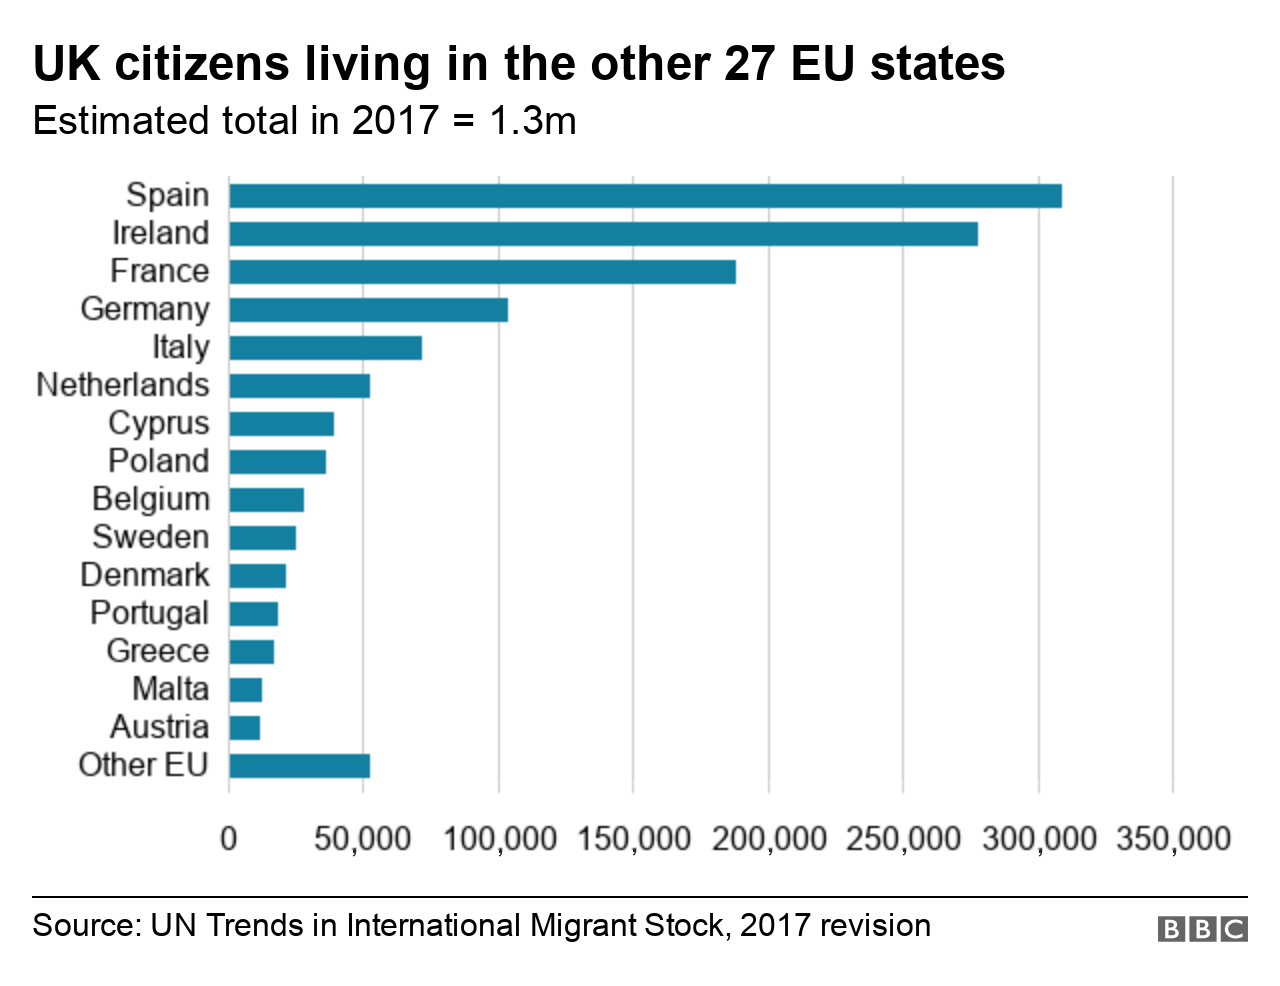 Graphic showing numbers of UK citizens in EU27